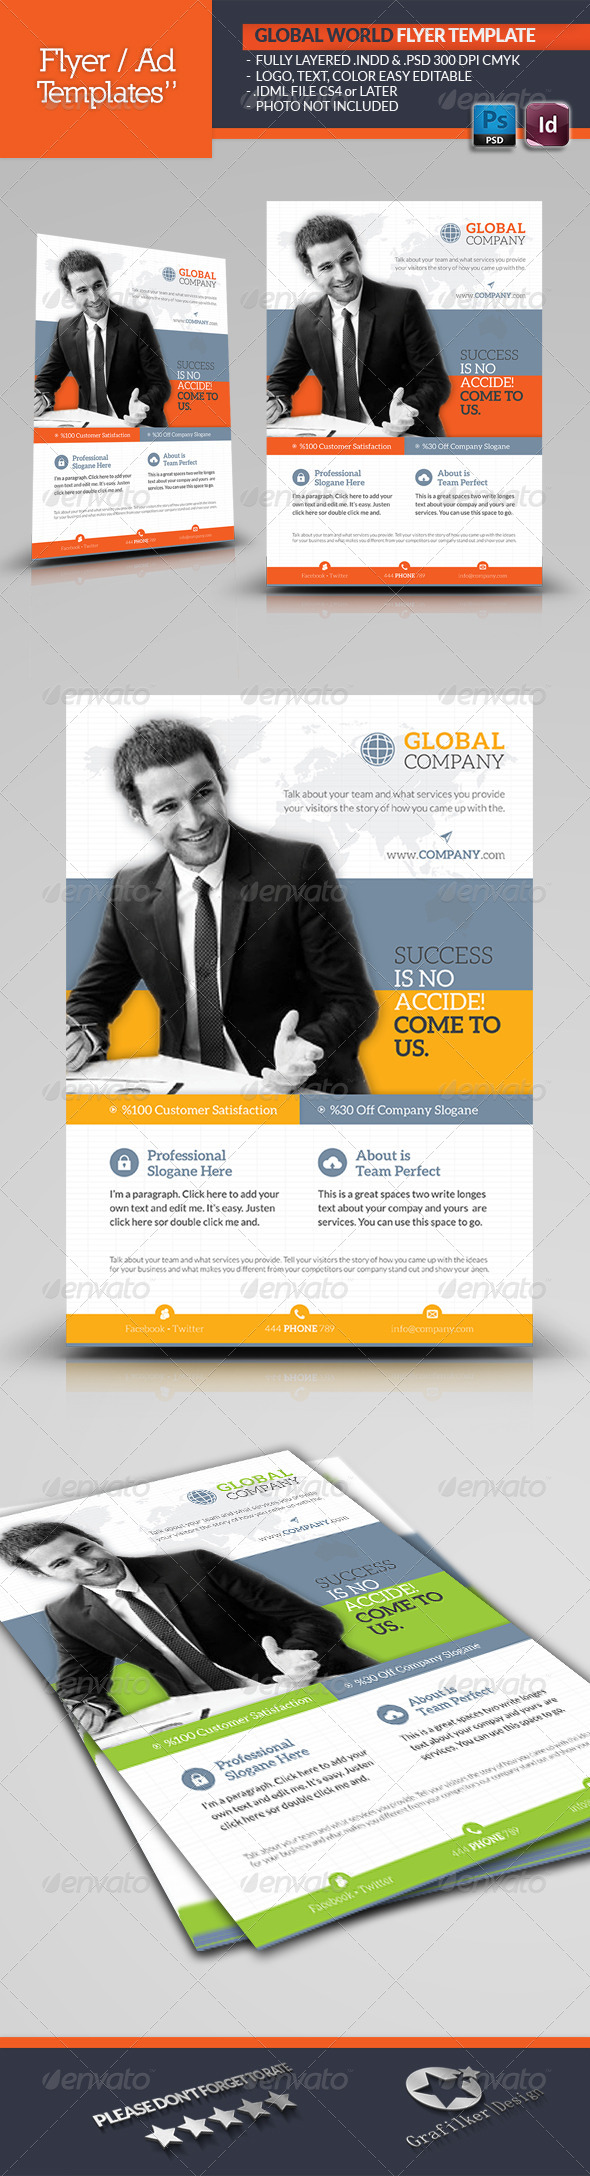 Global World Flyer Template - Corporate Flyers